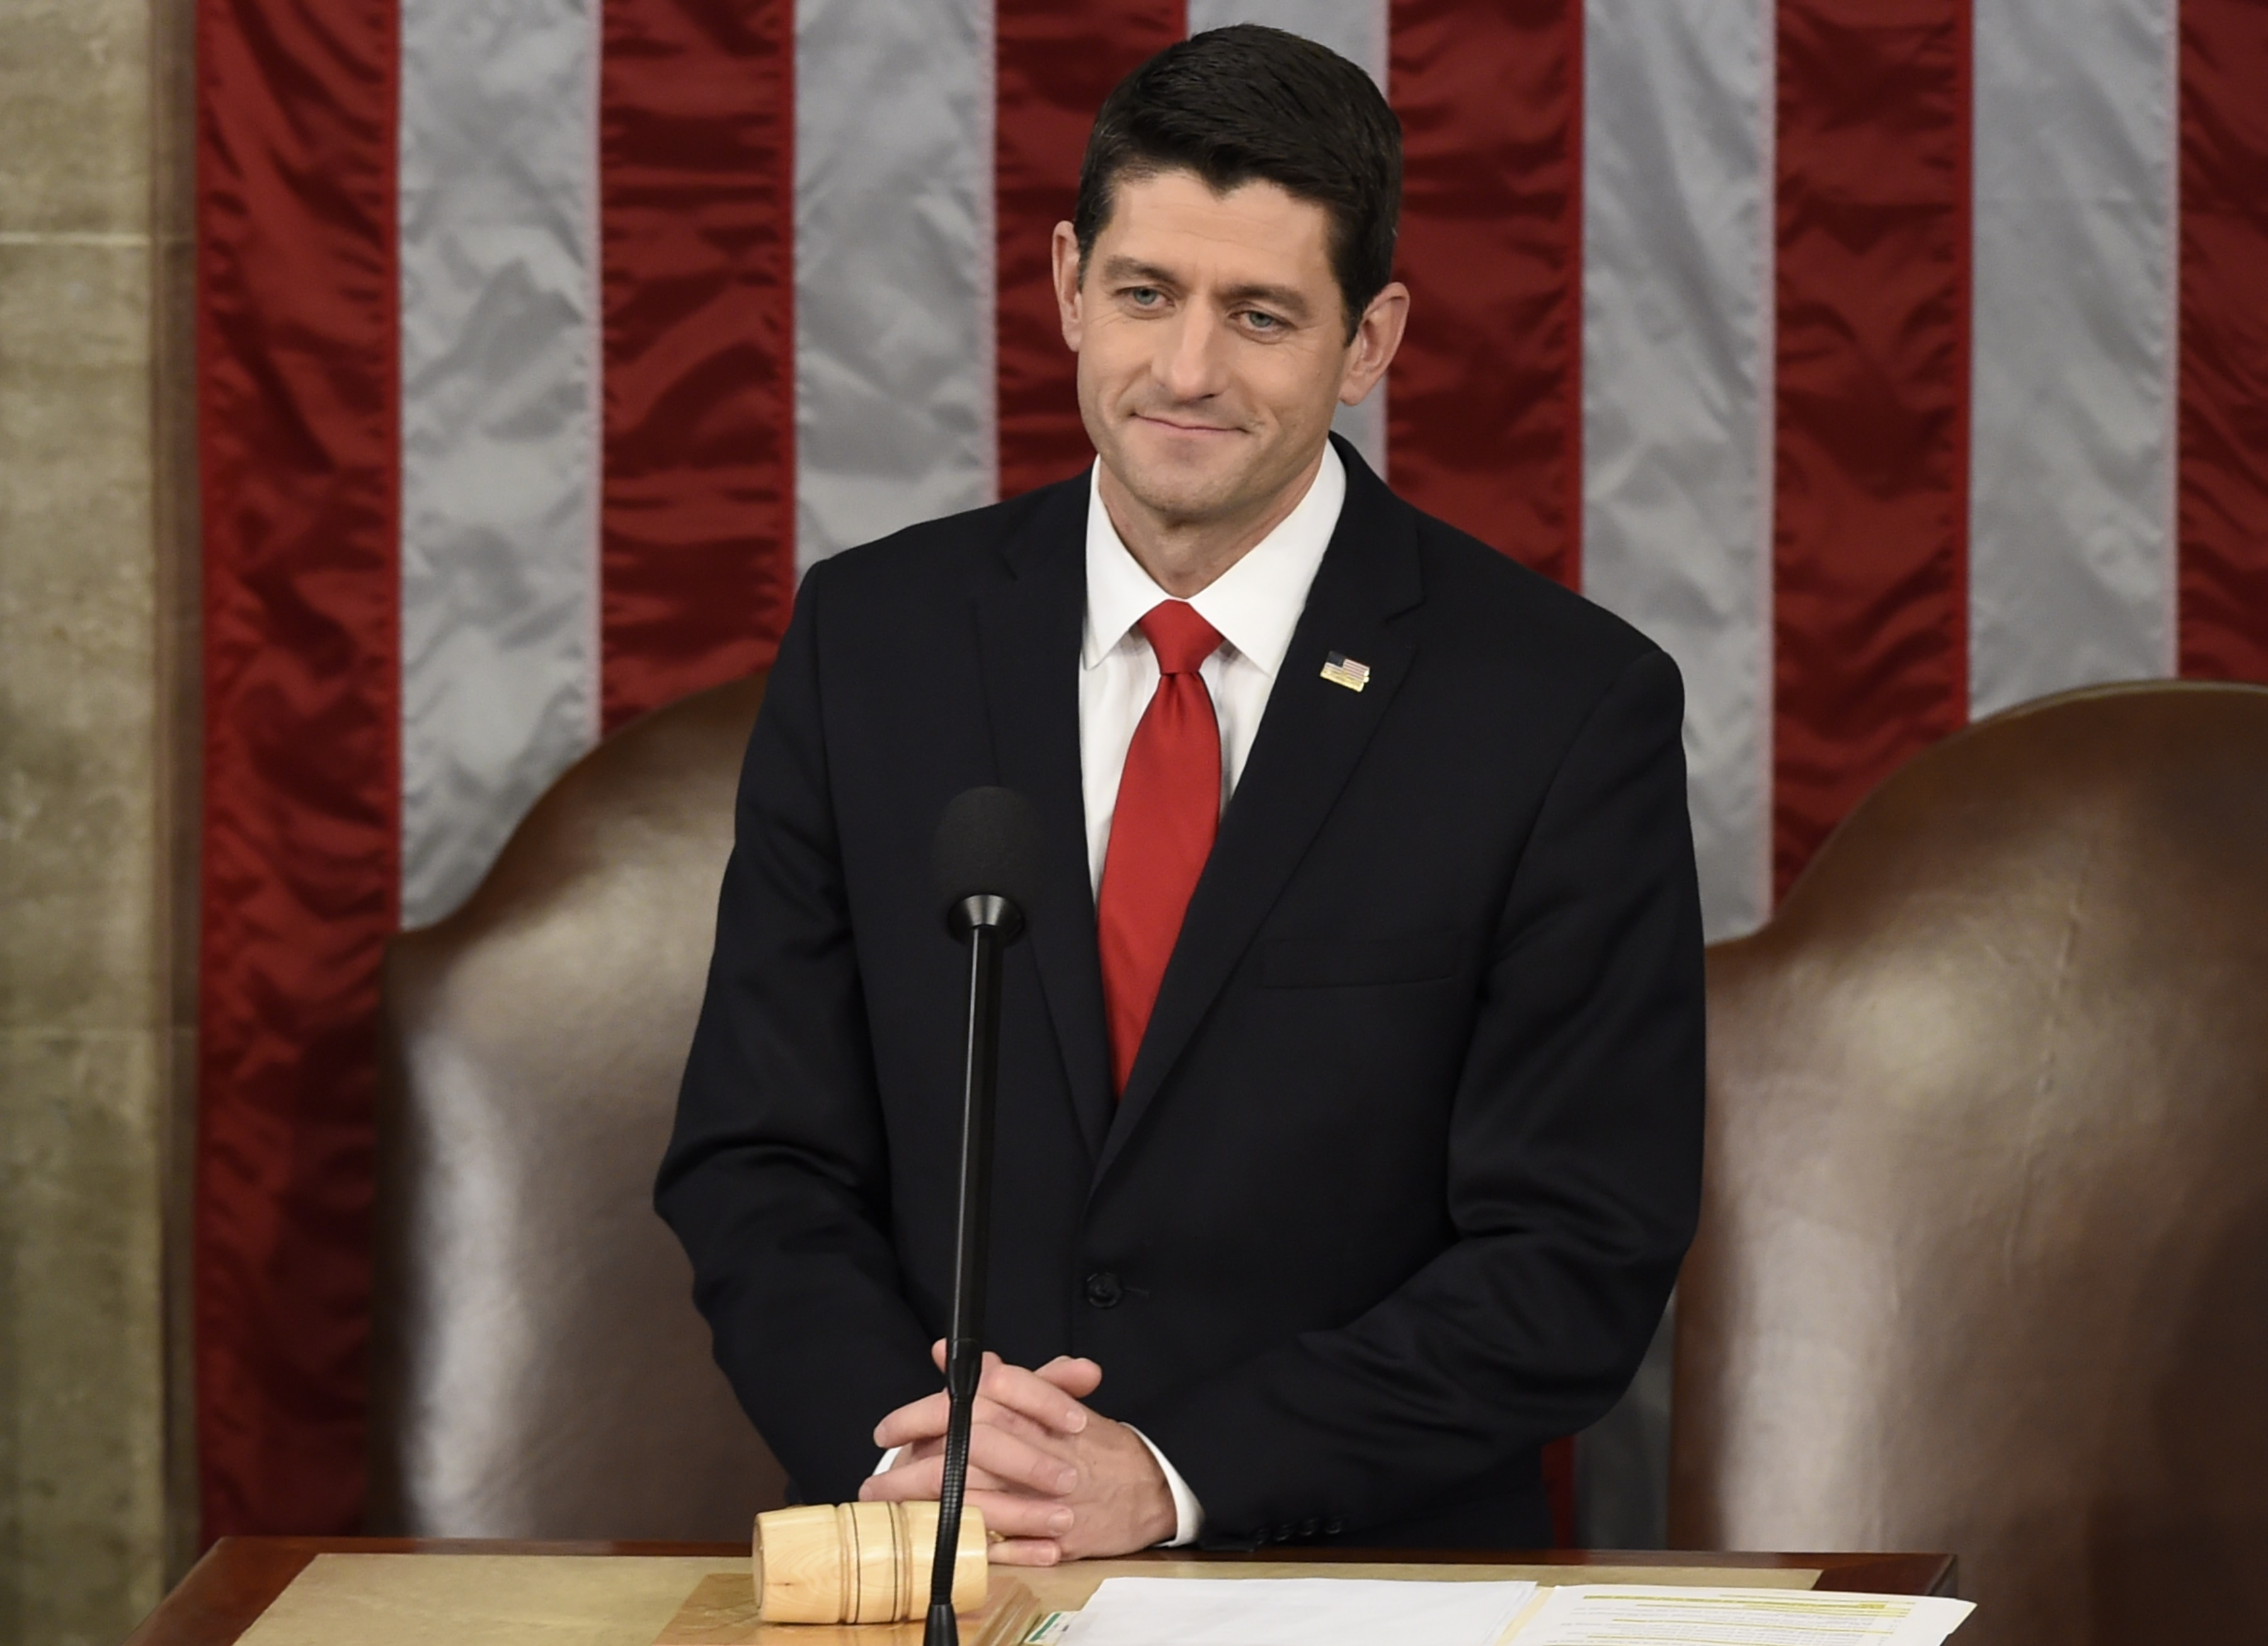 Paul Ryanu0027s Net Worth Is Elusive U0026 The House Speakeru0027s Wealth Comes From A  Variety Of Sources